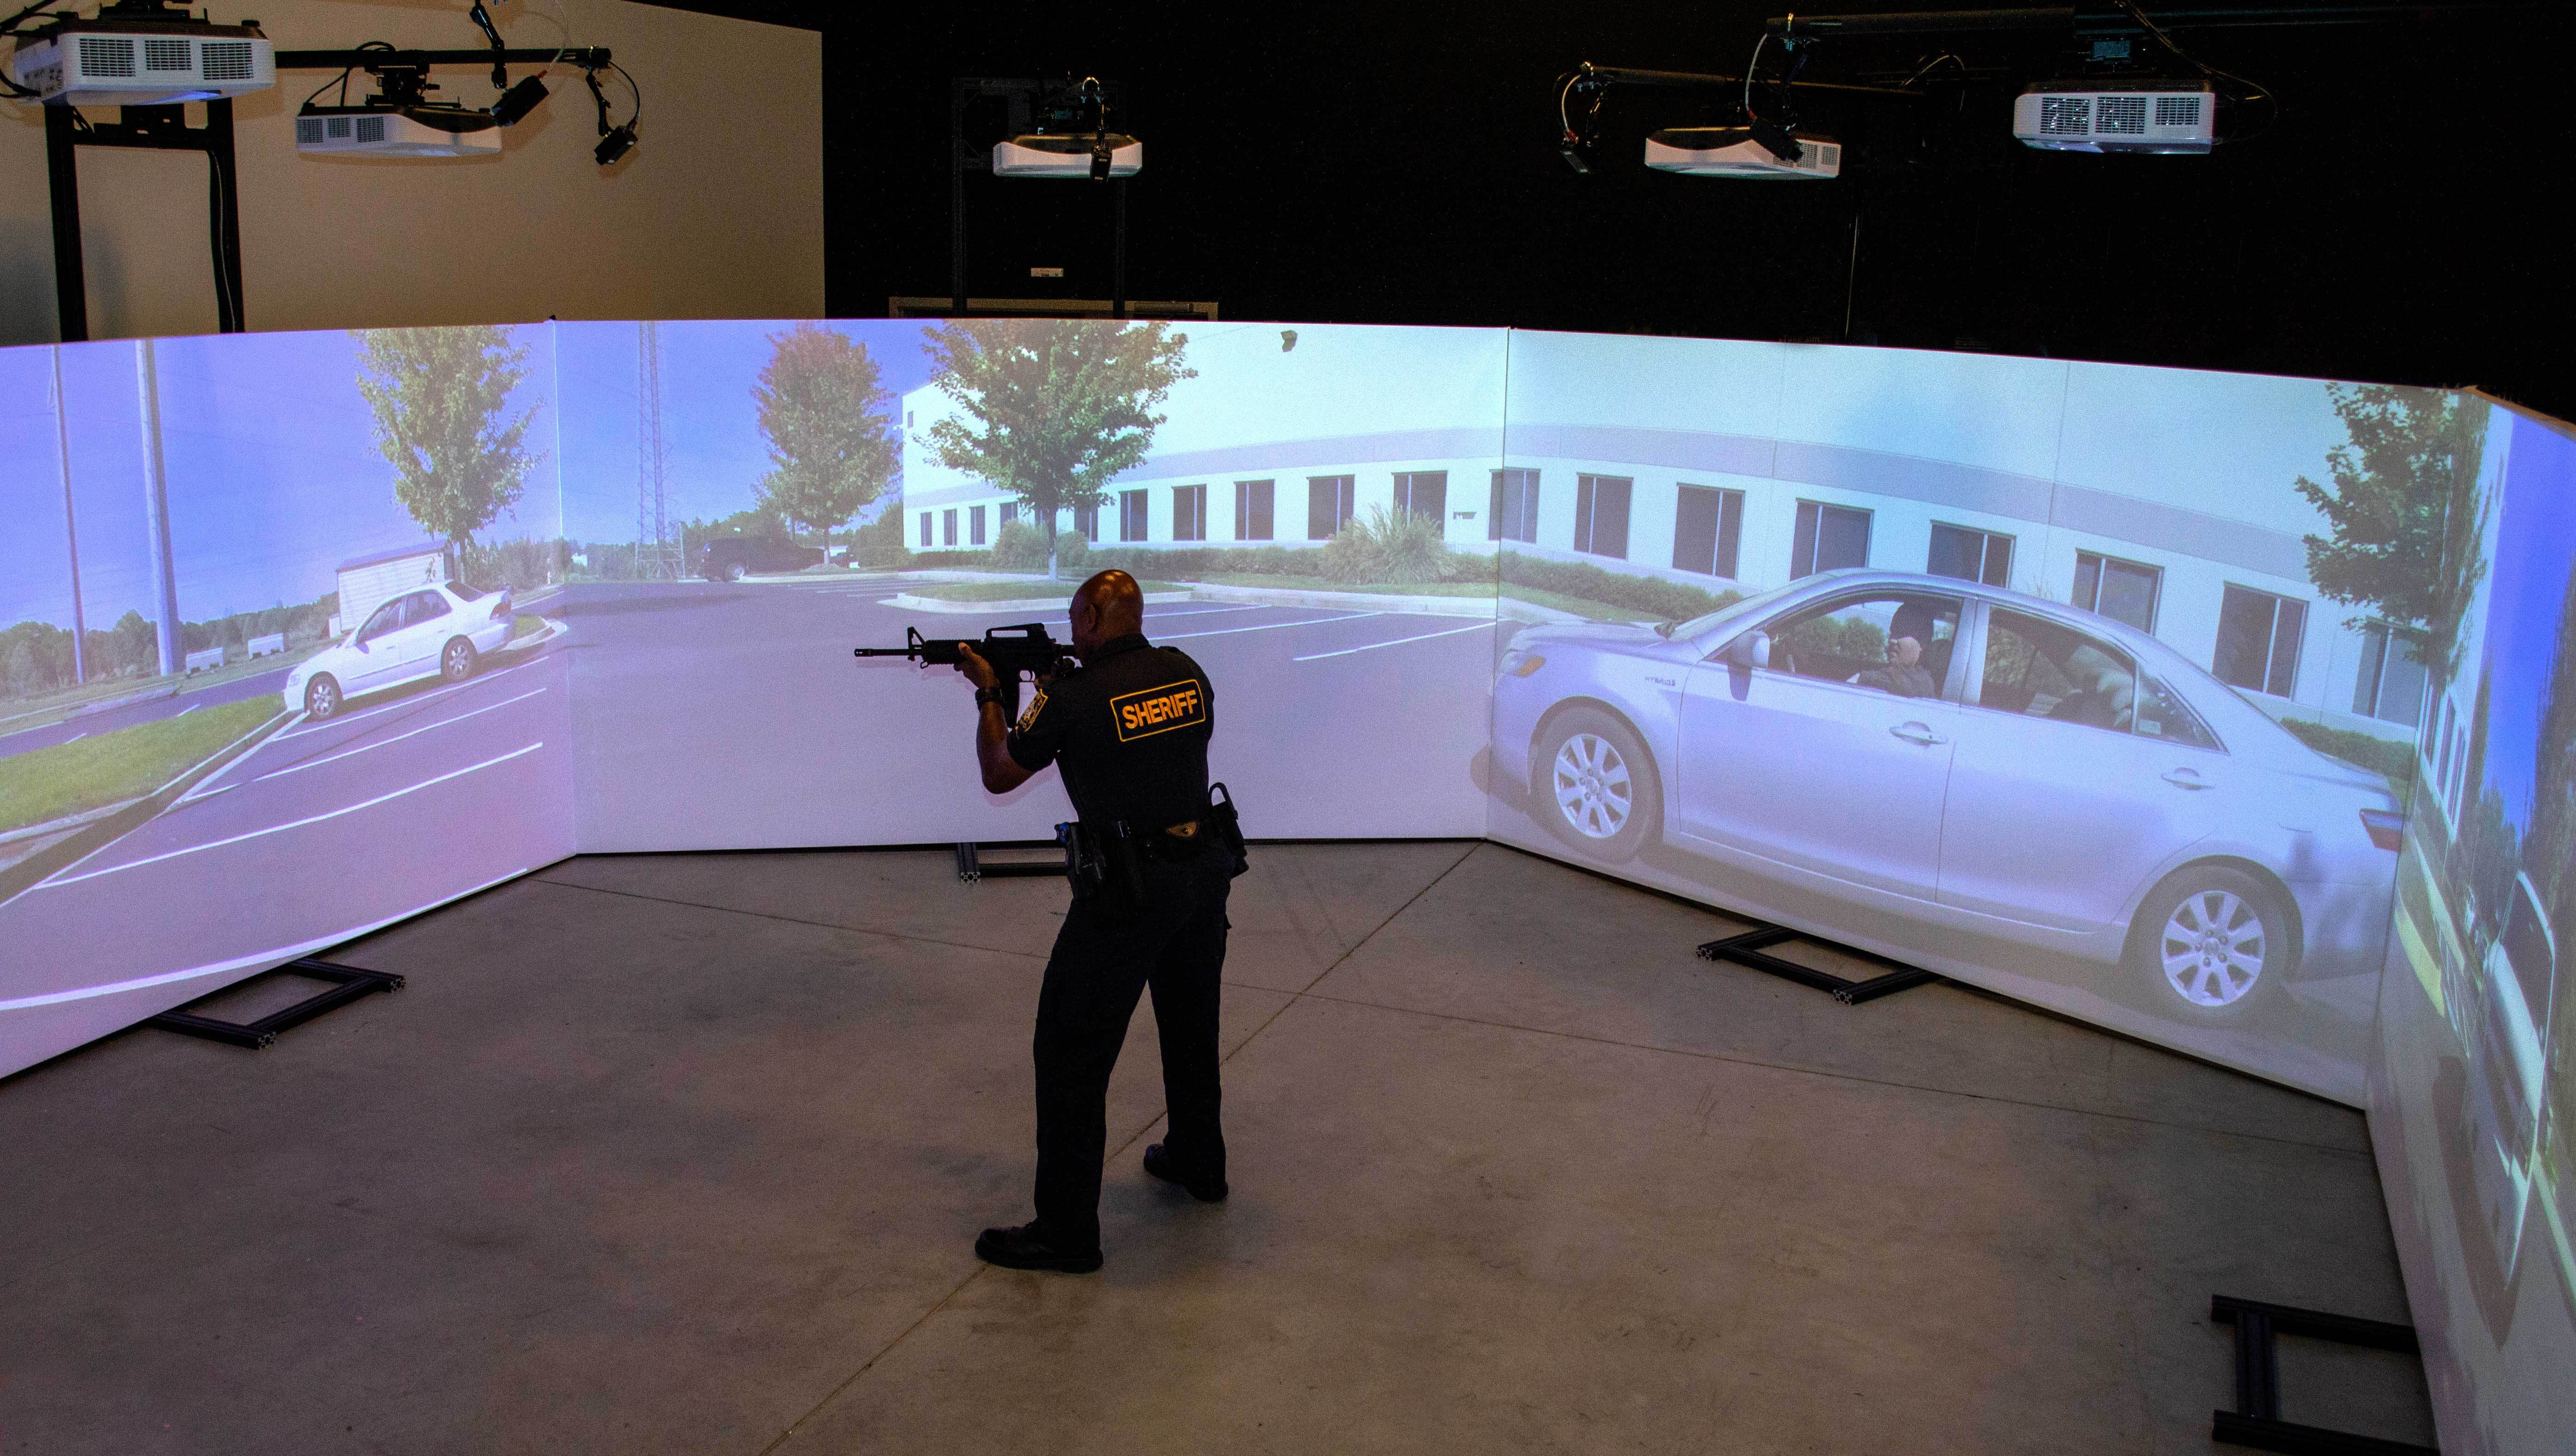 Georgia S Statewide Police Academy Selects Meggitt Training Systems